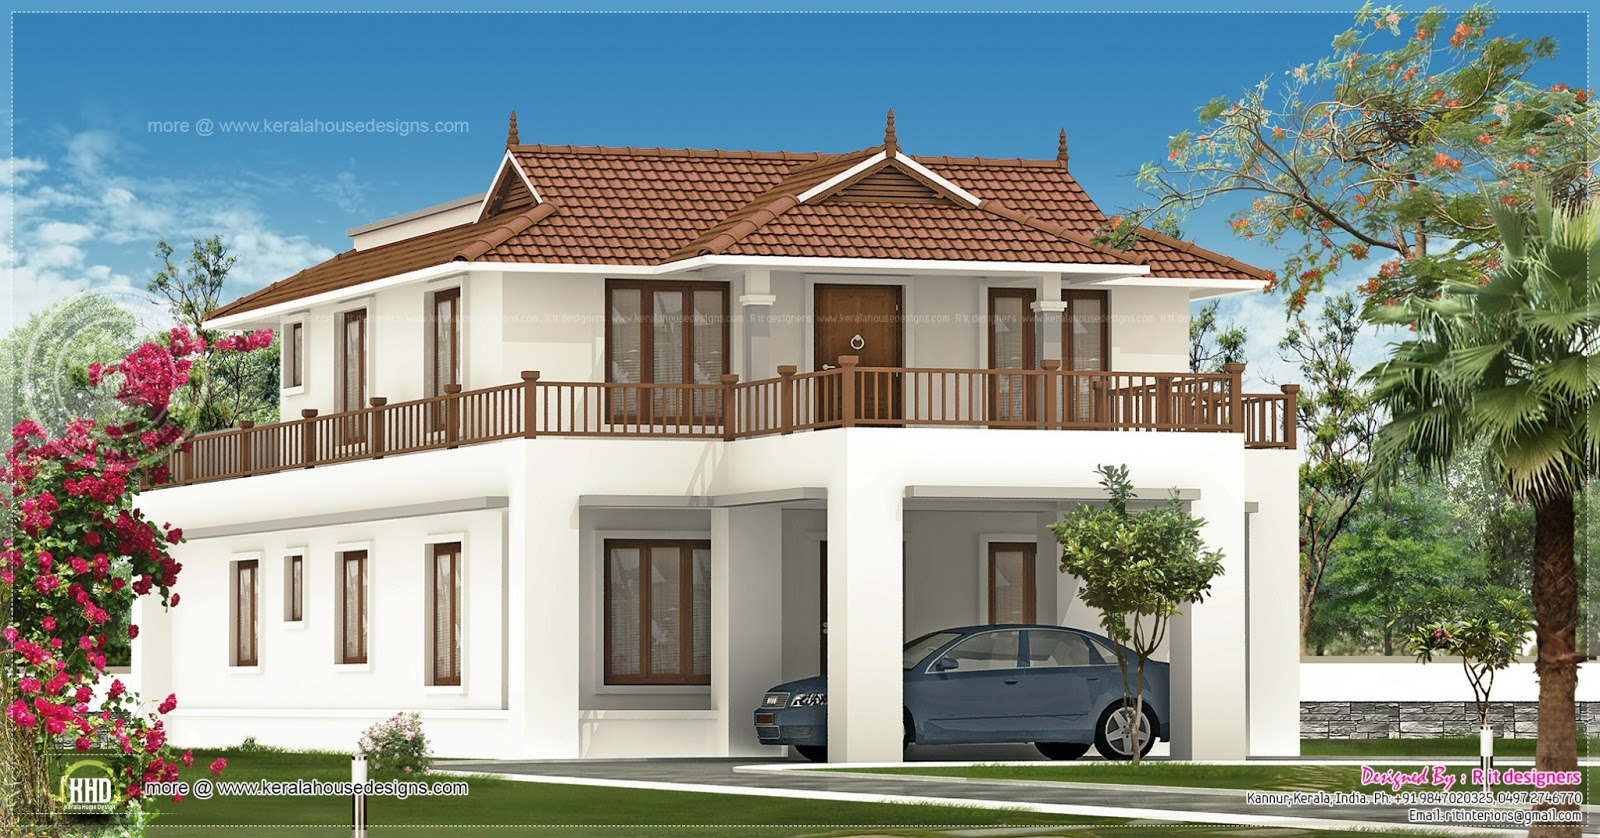 2820 square feet house exterior design home kerala plans for House paint outside design